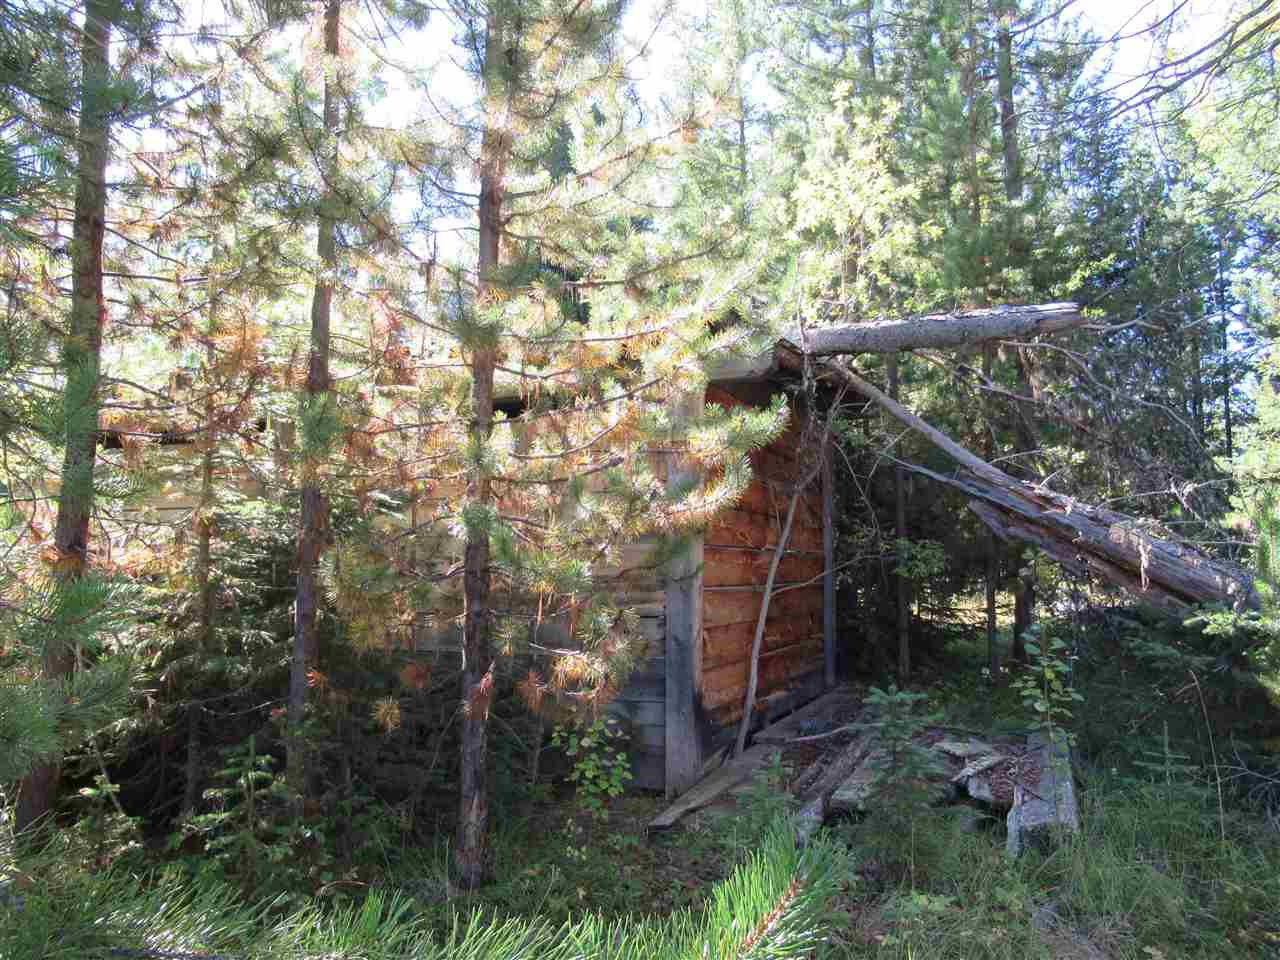 Photo 3: Photos: DL 6426 TONKA Road: 150 Mile House Land for sale (Williams Lake (Zone 27))  : MLS®# R2497364